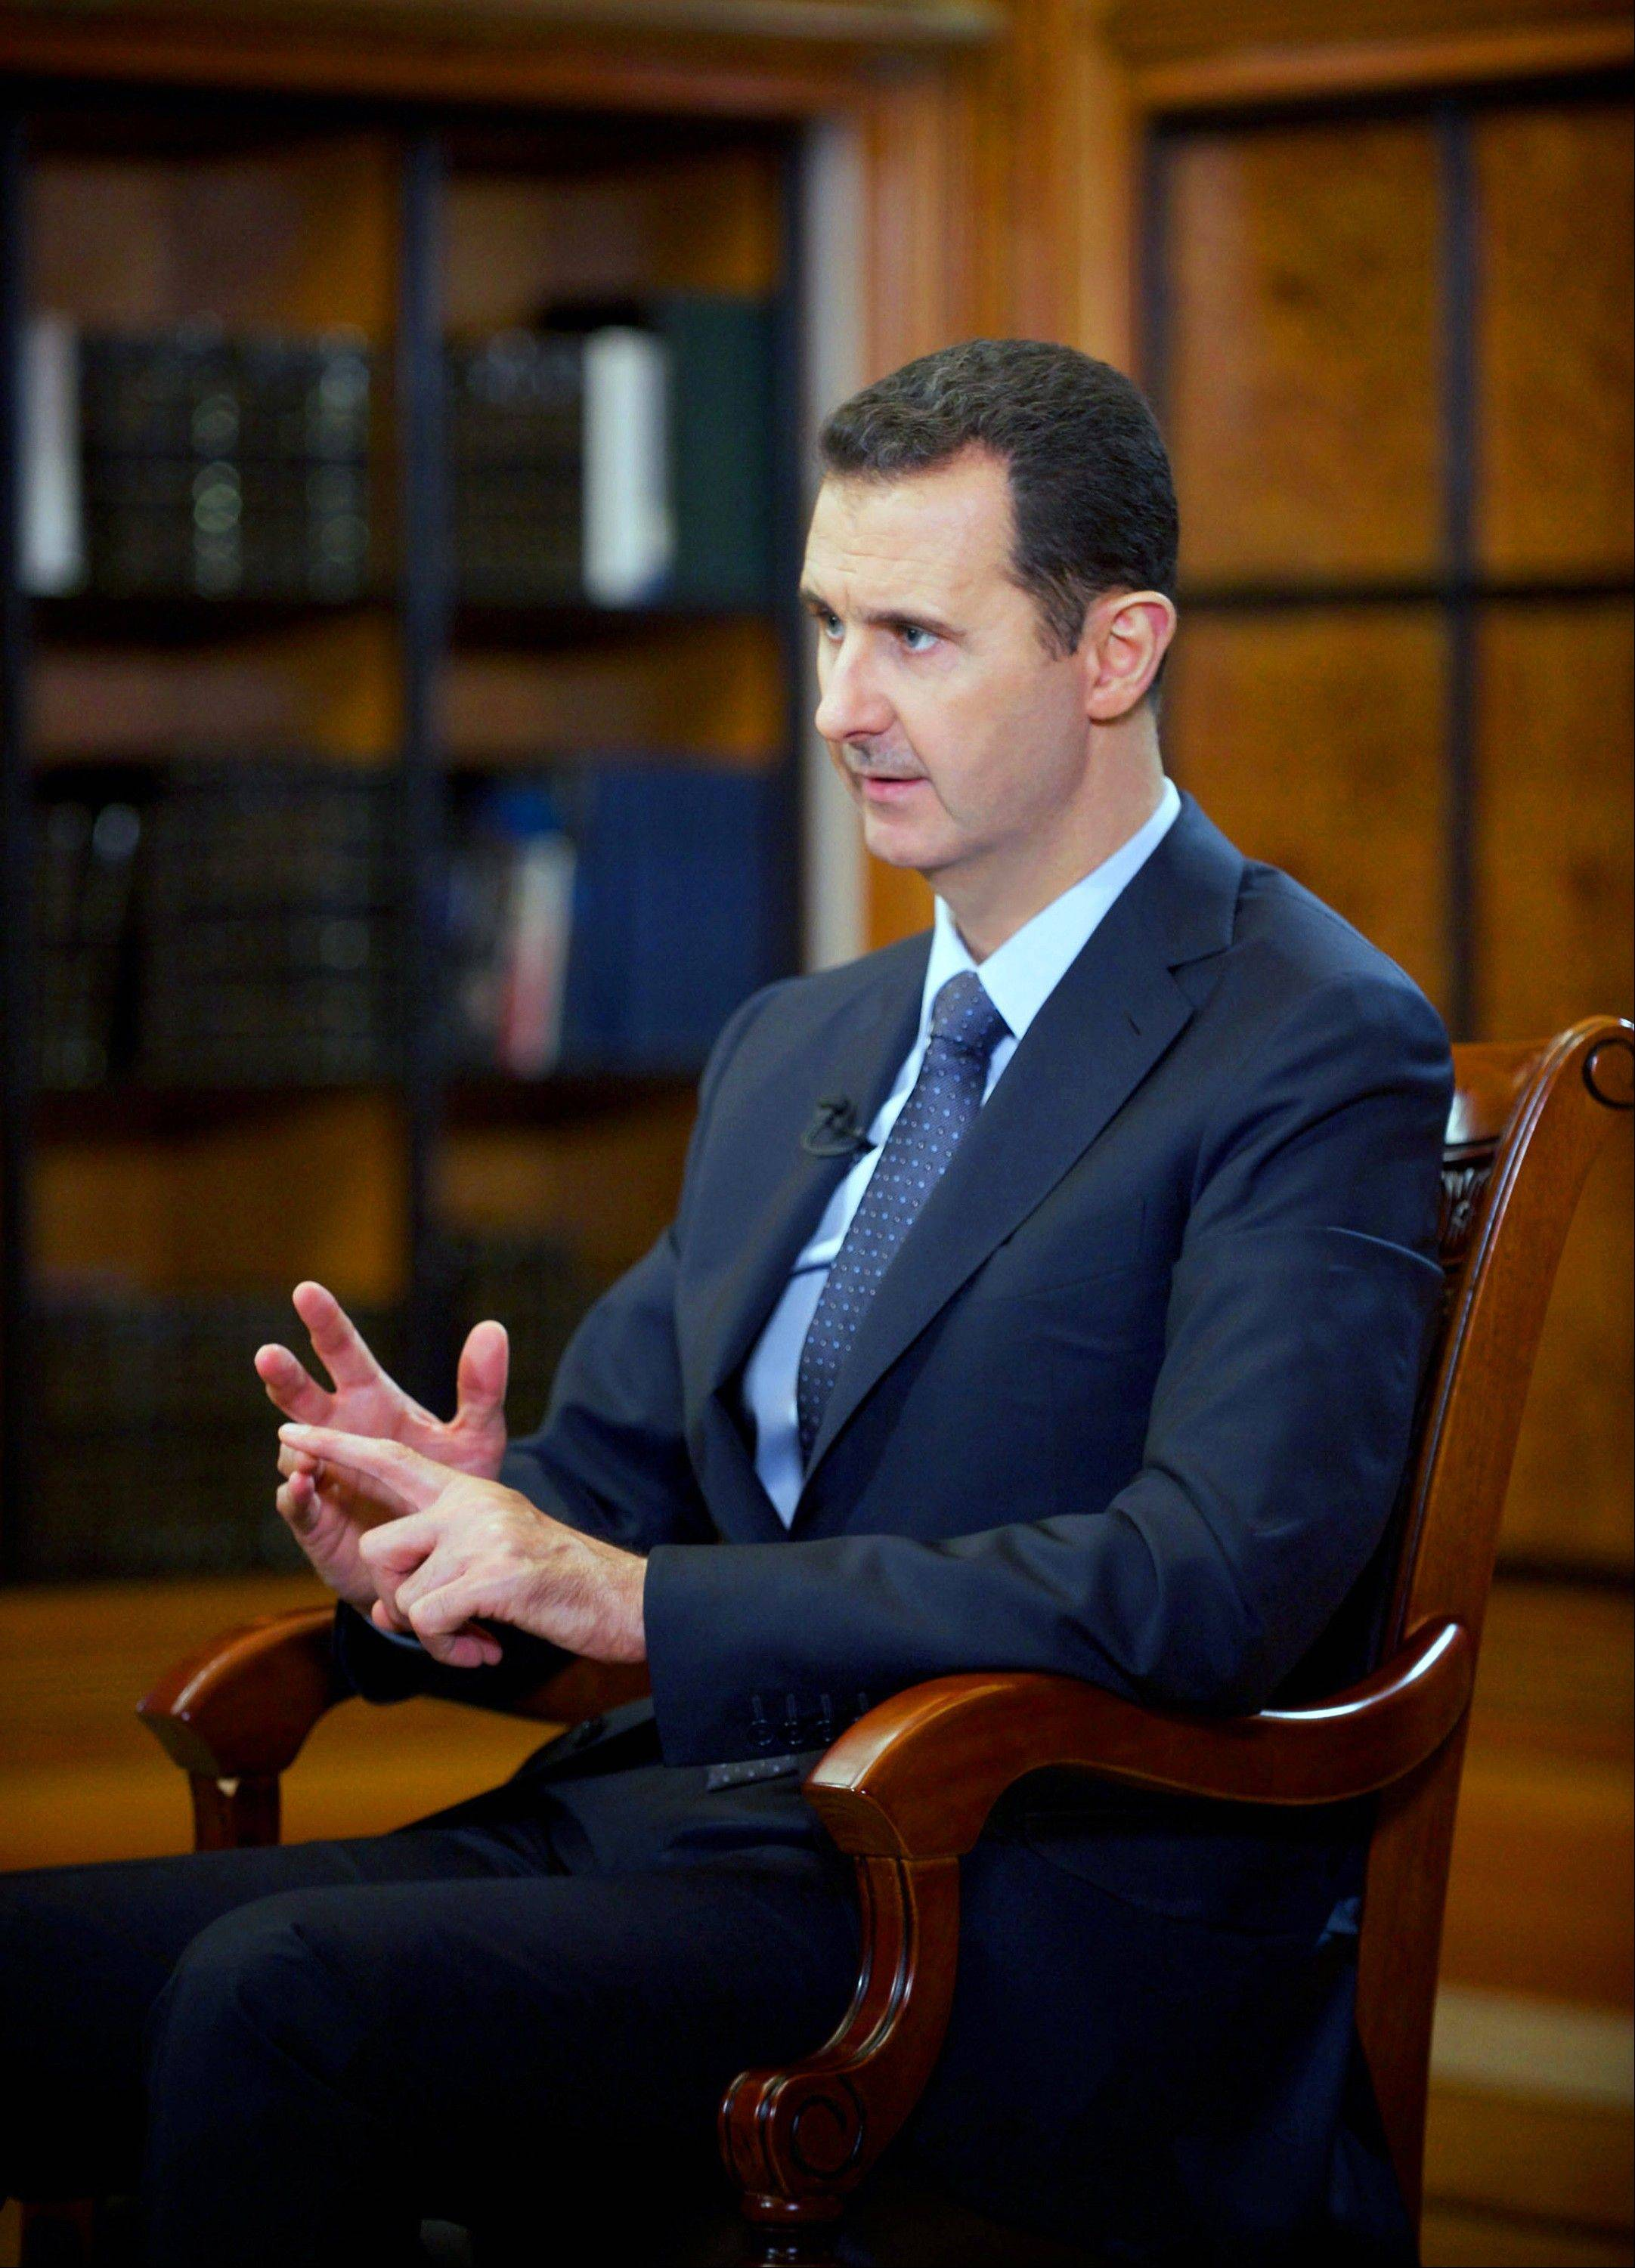 In this photo released by the Syrian official news agency SANA, Syrian President Bashar Assad speaks during an interview with Chinese state CCTV, in Damascus, Syria, Monday, Sept. 23, 2013. Assad said his government will allow international experts access to its chemical weapons sites but cautioned in an interview broadcast Monday that rebels might block them from reaching some of the locations. (AP Photo/SANA)